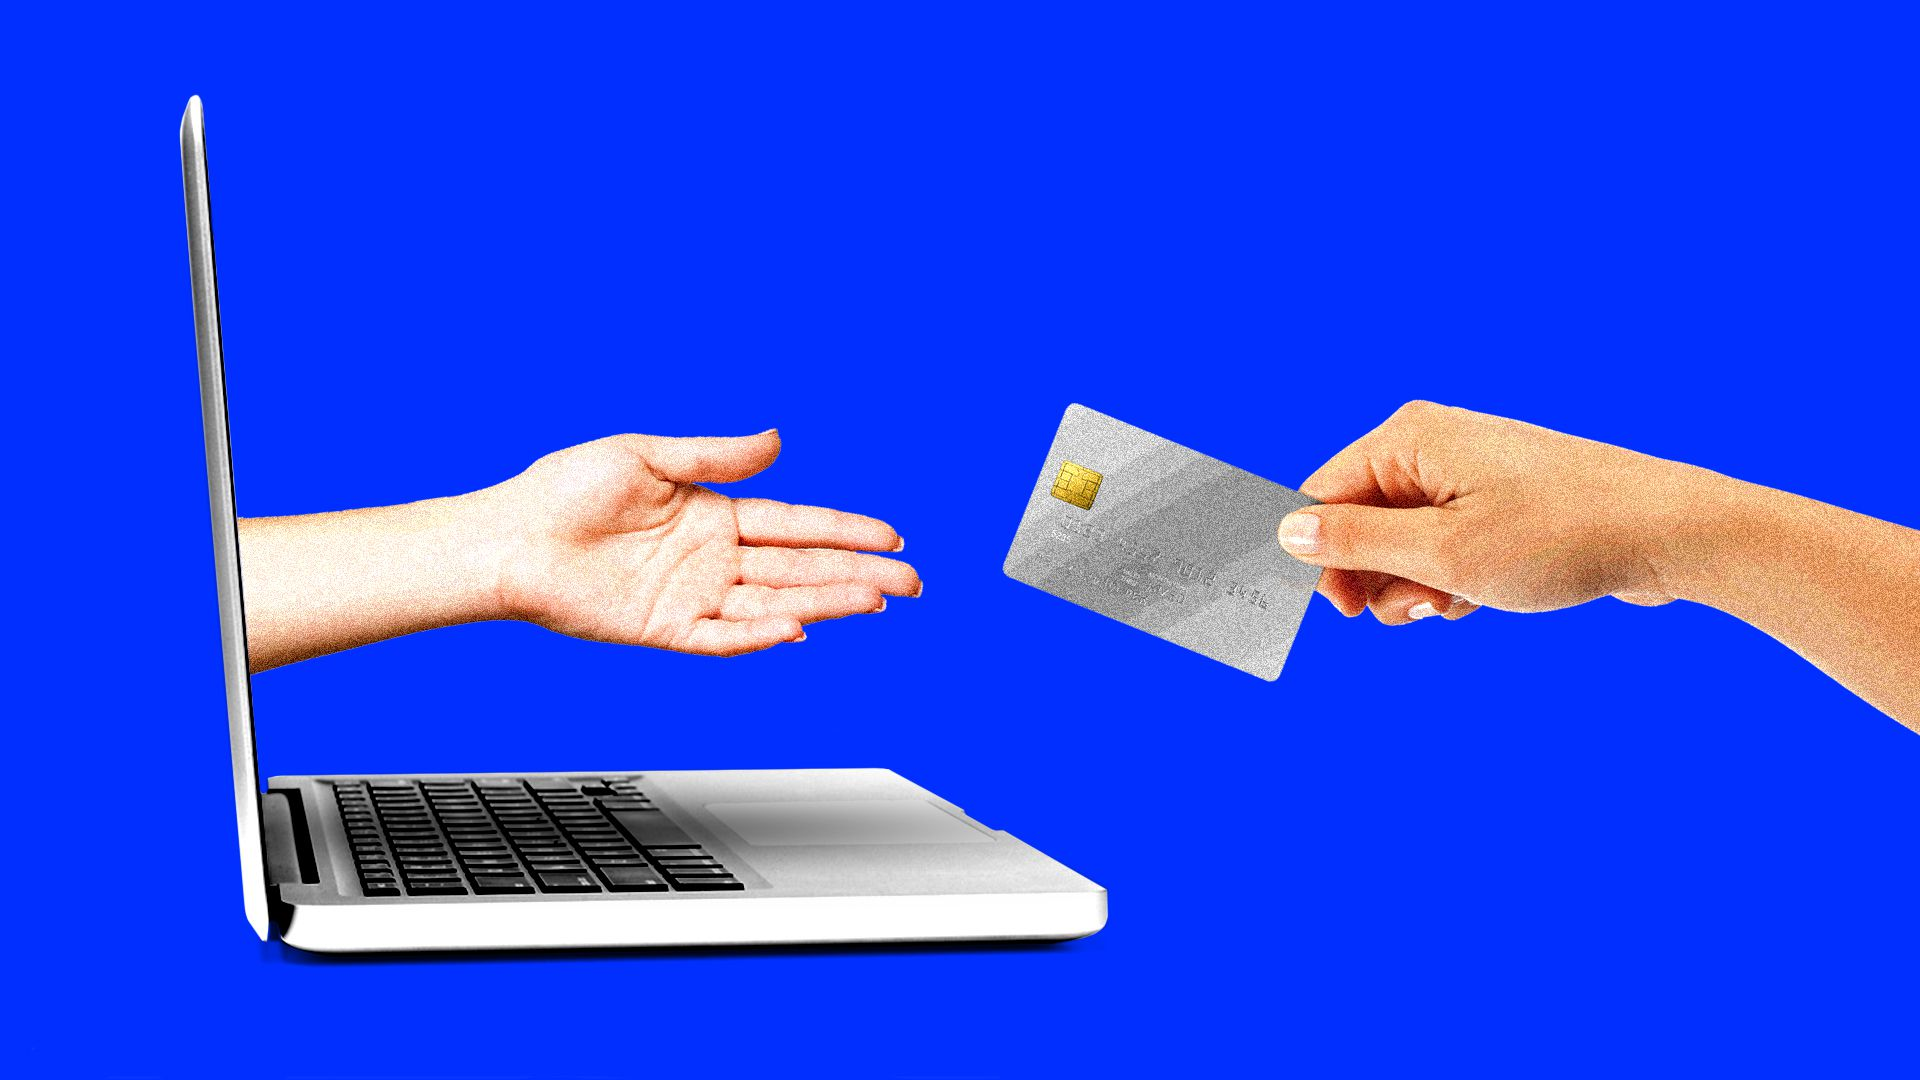 A hand reaches out of a laptop for a shopper's credit card